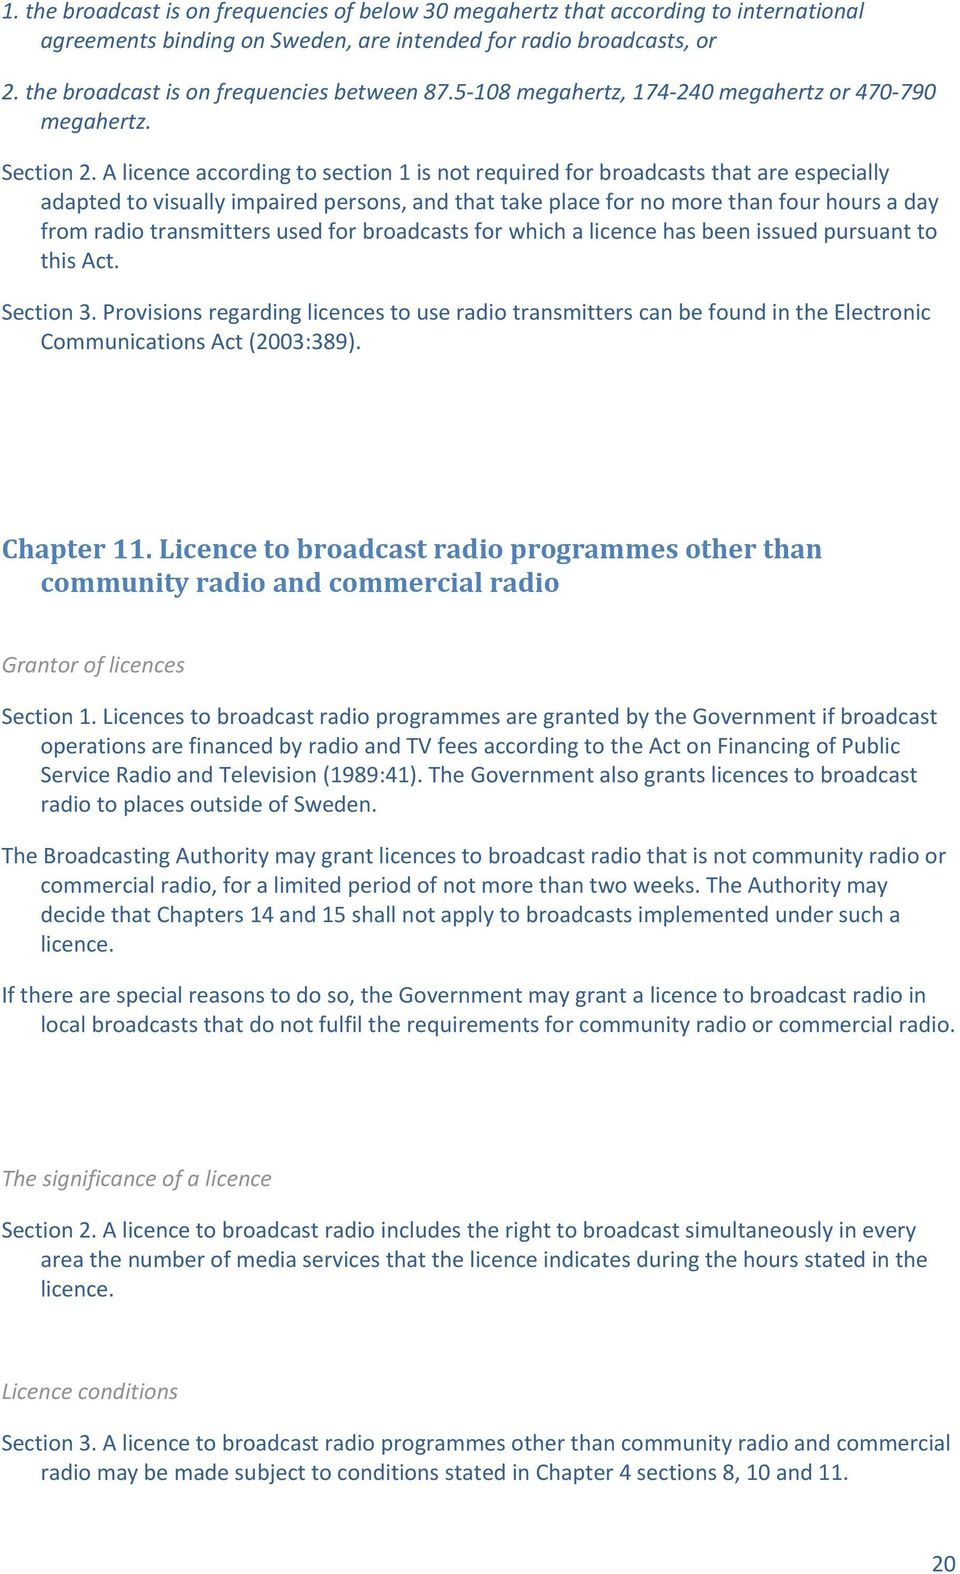 A licence according to section 1 is not required for broadcasts that are especially adapted to visually impaired persons, and that take place for no more than four hours a day from radio transmitters